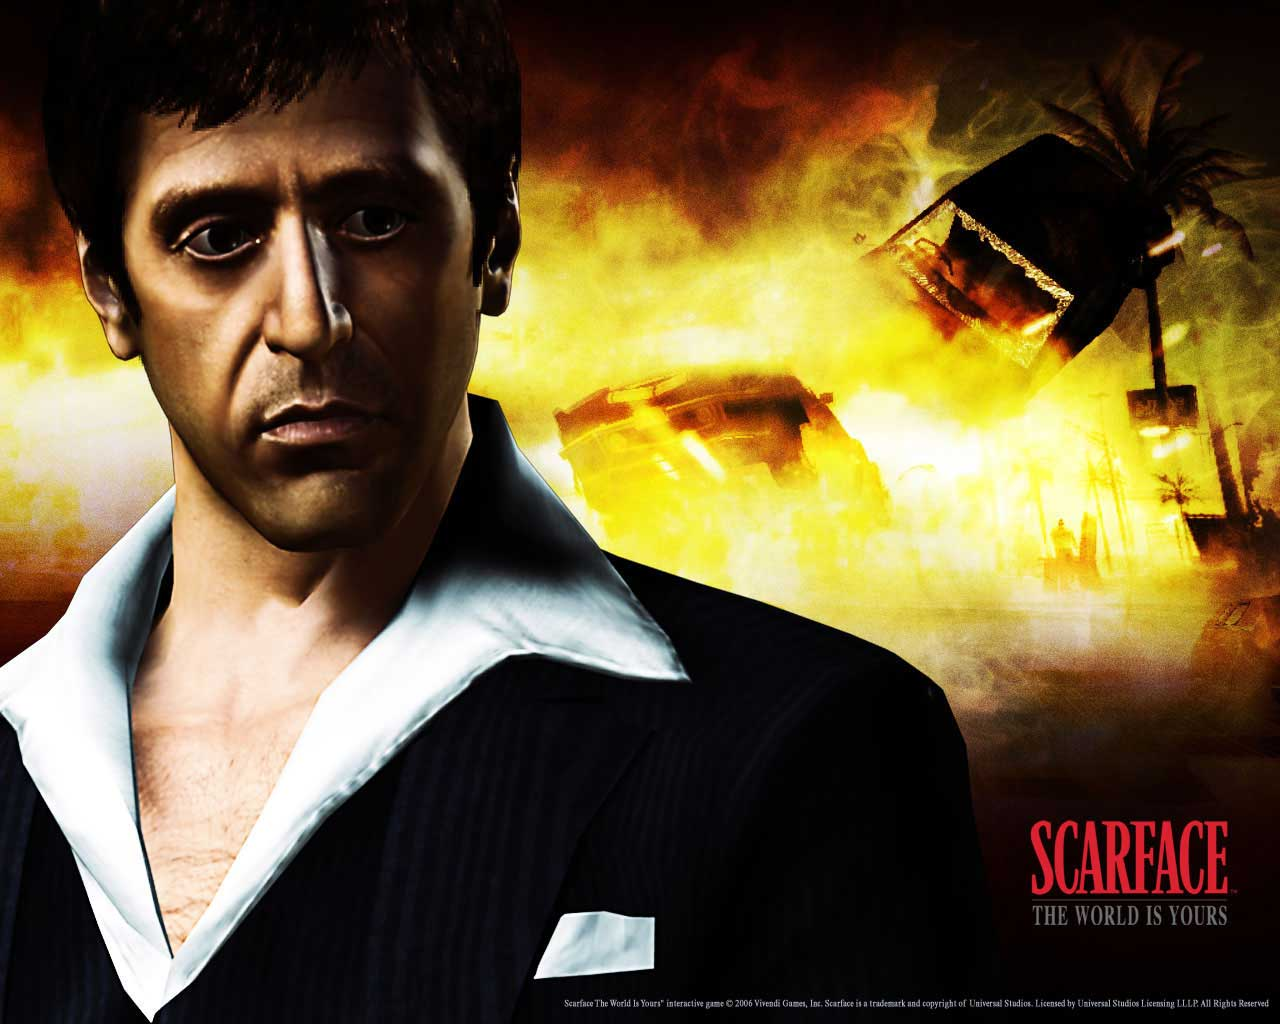 Scarface Wallpapers Desktop Wallpaper Best of Scarface 1280x1024